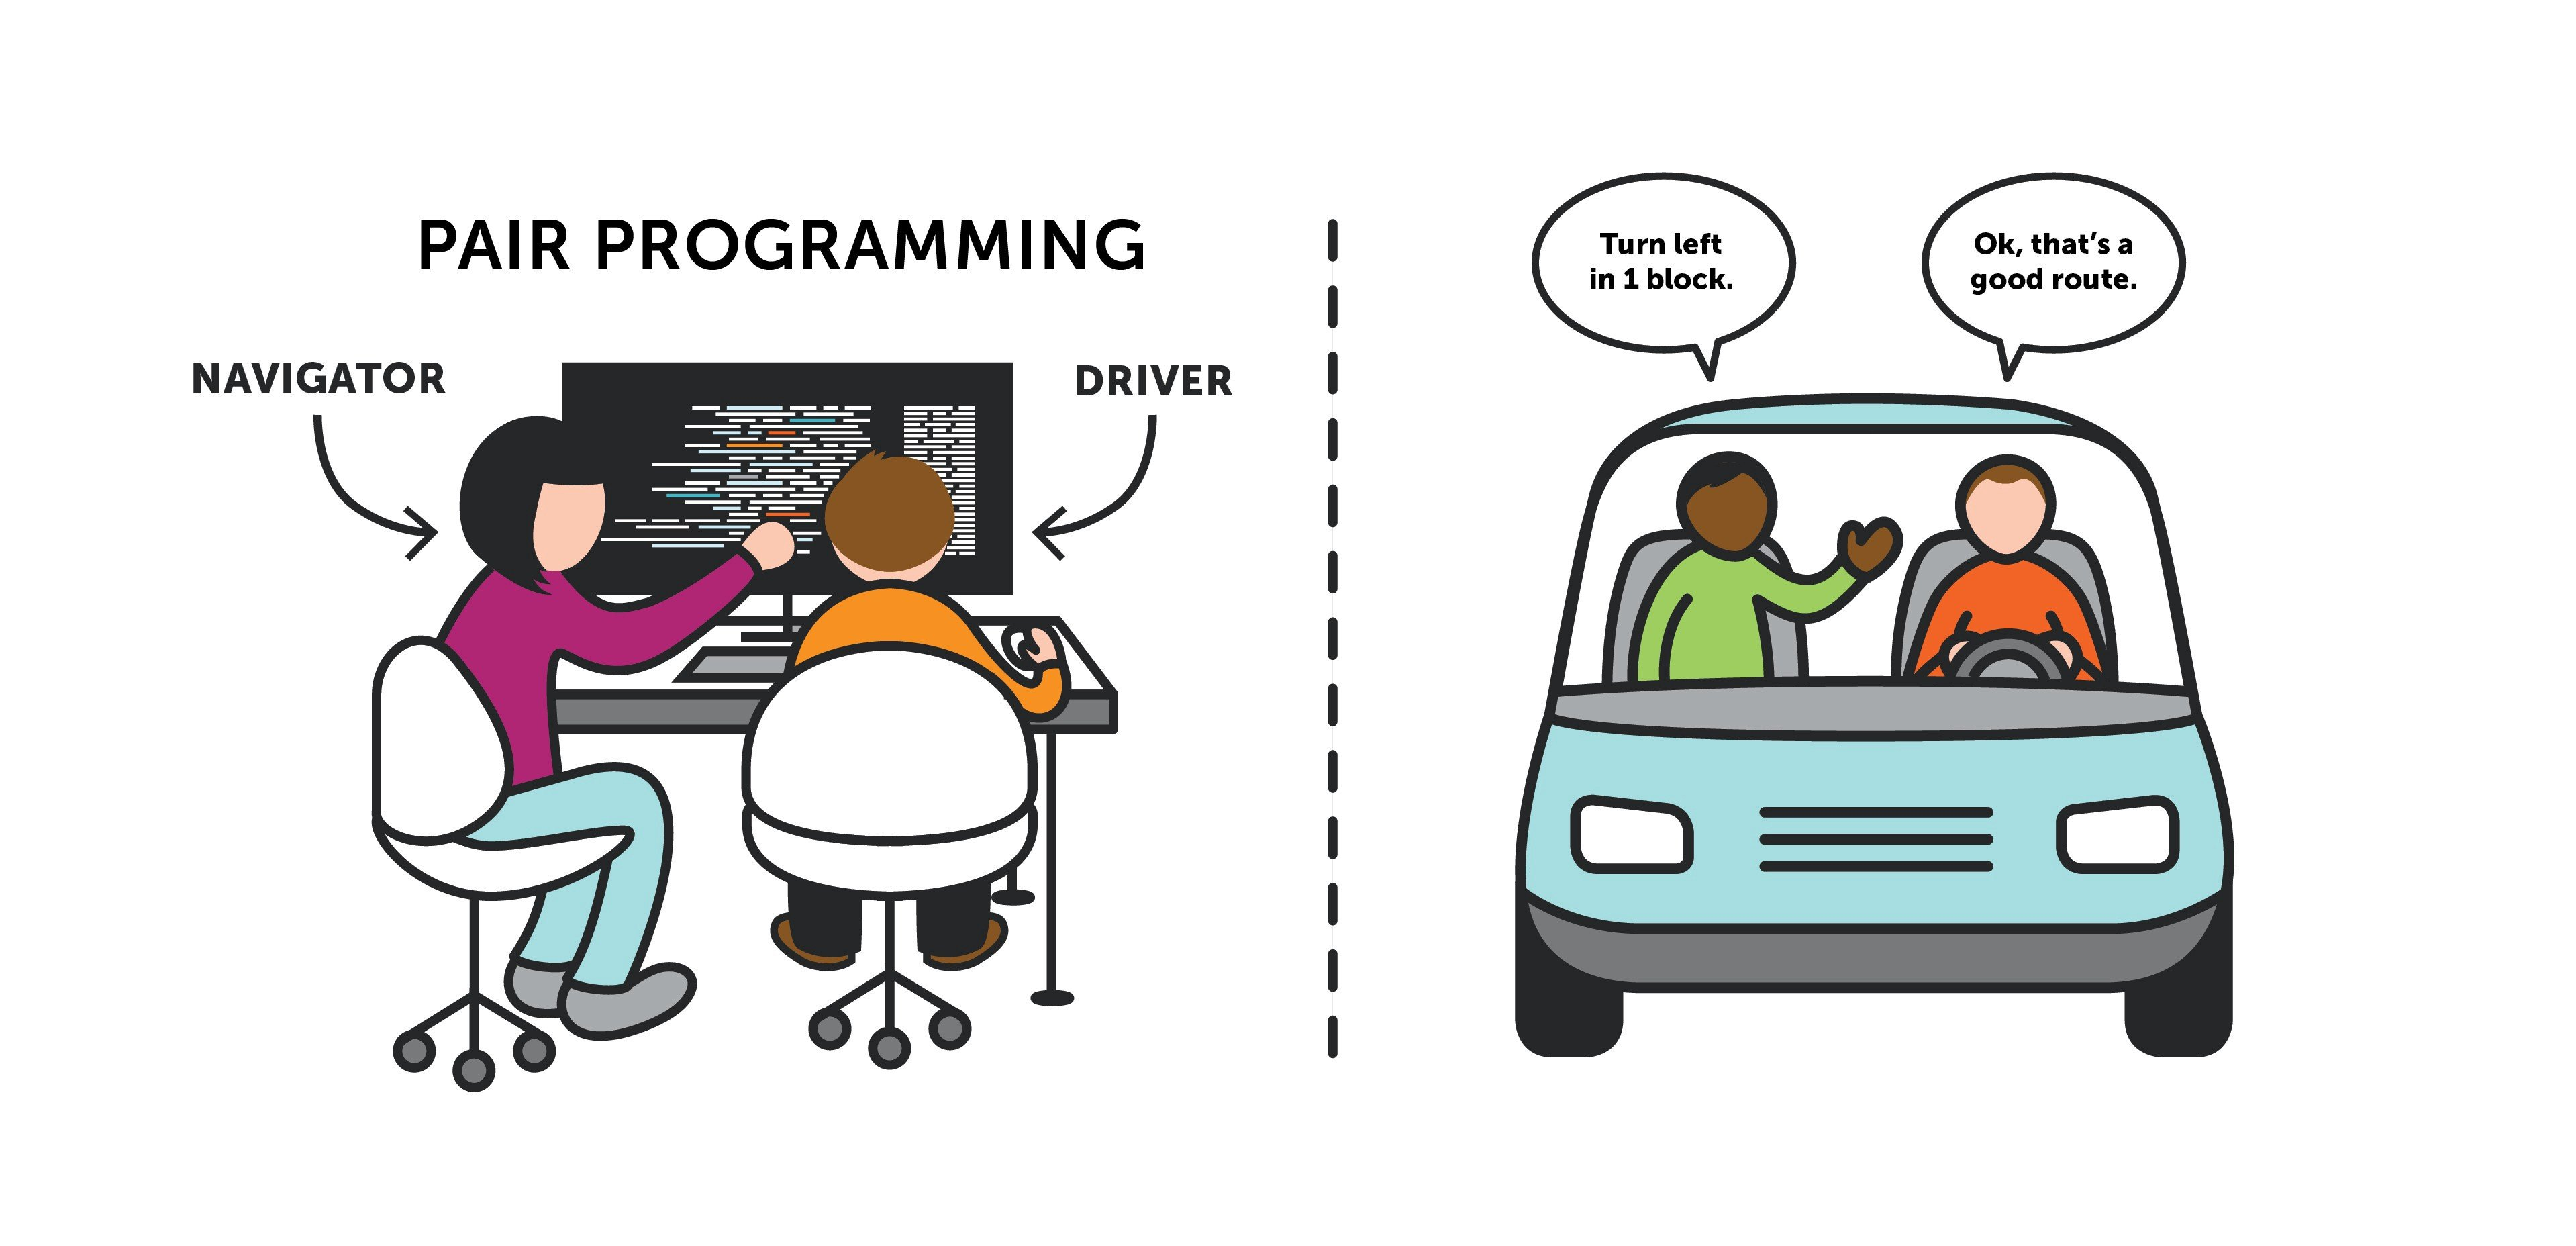 Pair programming is similar to having a navigator while you drive